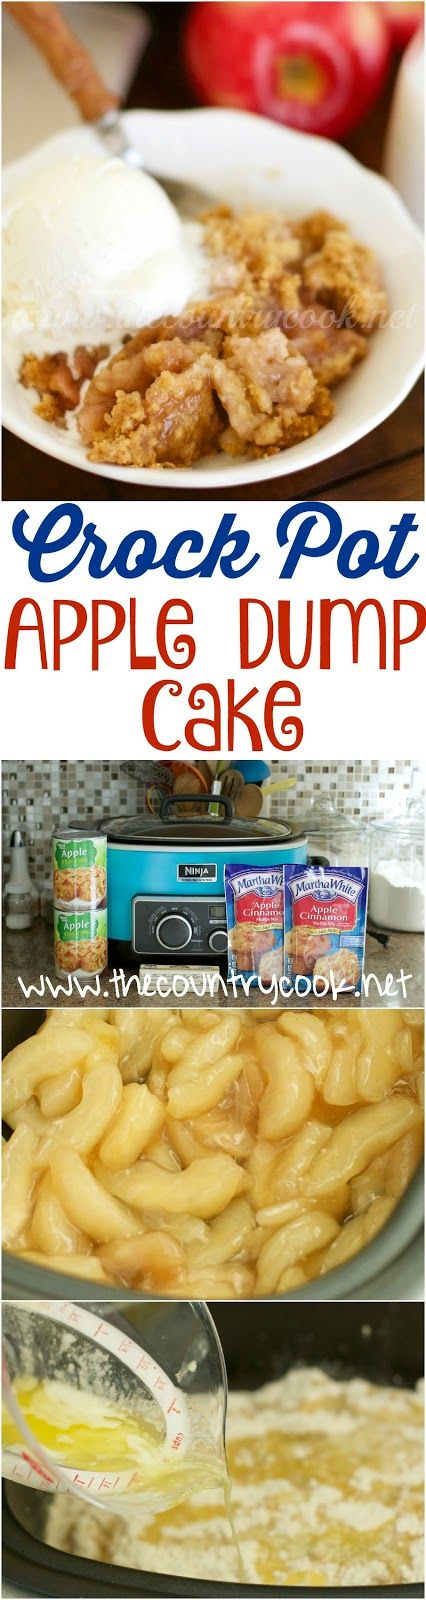 Crock Pot Apple Dump Cake recipe from The Country Cook. Only 3 ingredients! Plus, I can easily change up the flavors with cherry or strawberry or peaches. We all love this stuff and it's a bonus to be able to make it in the crockpot. Definitely saving this one for the holidays when oven space is at a premium!